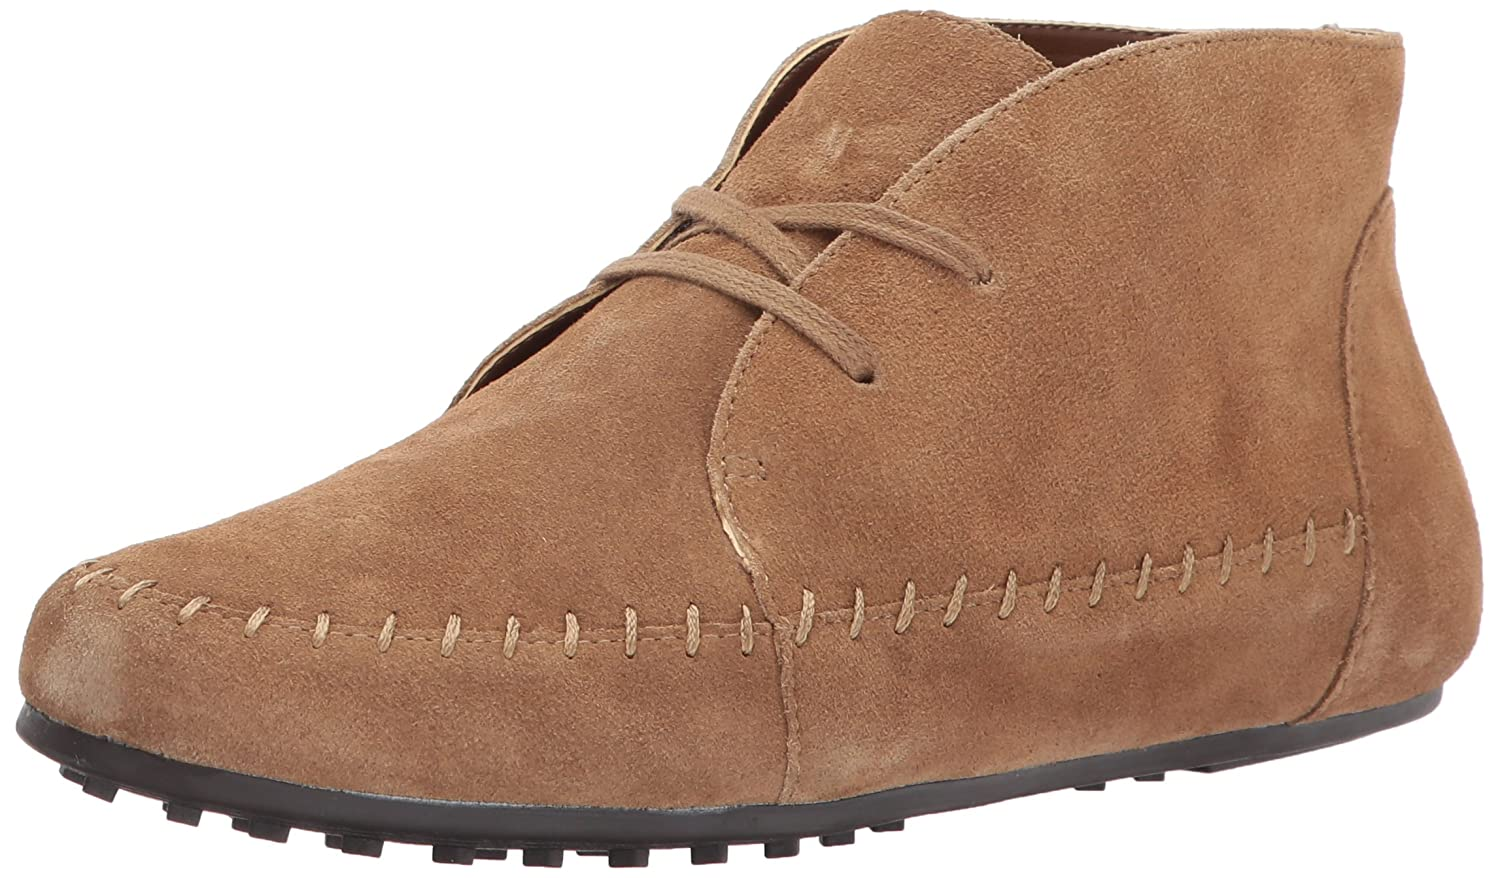 Aerosoles Women's Driving Range Ankle Boot B073P3KTFX 8 M US|Tan Suede